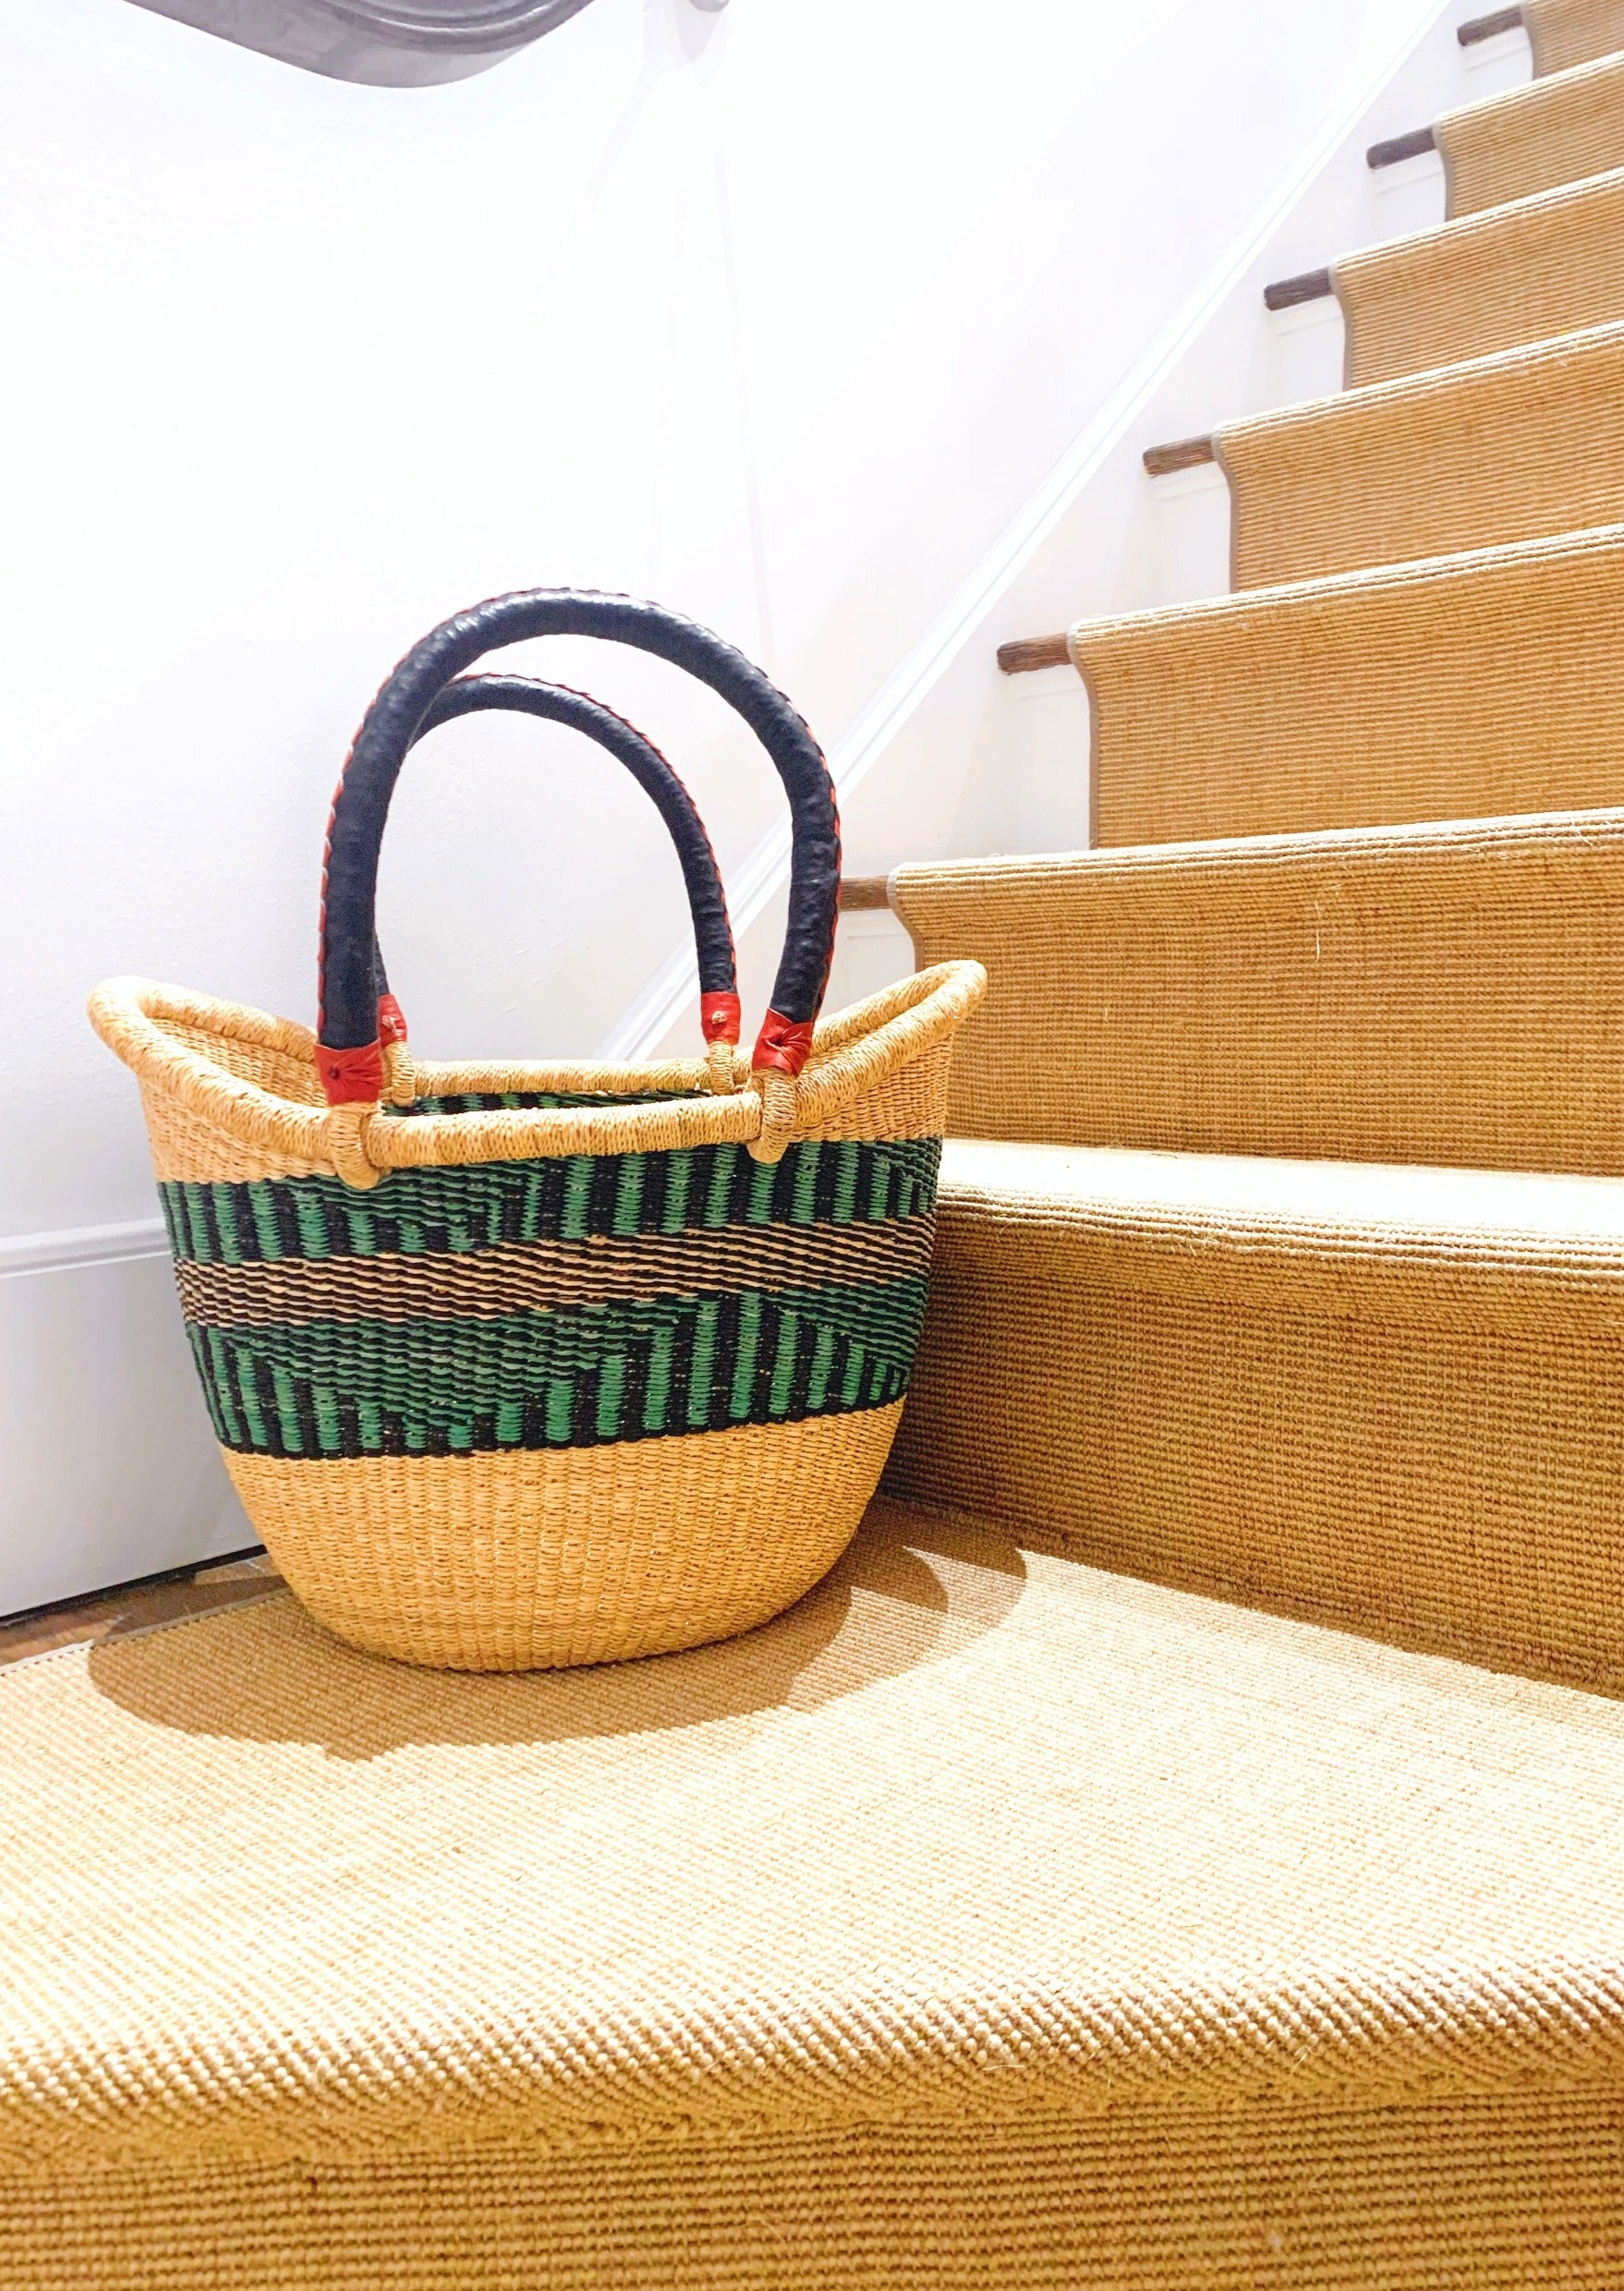 Large Tote Basket: Aqua Band (1 of 1)